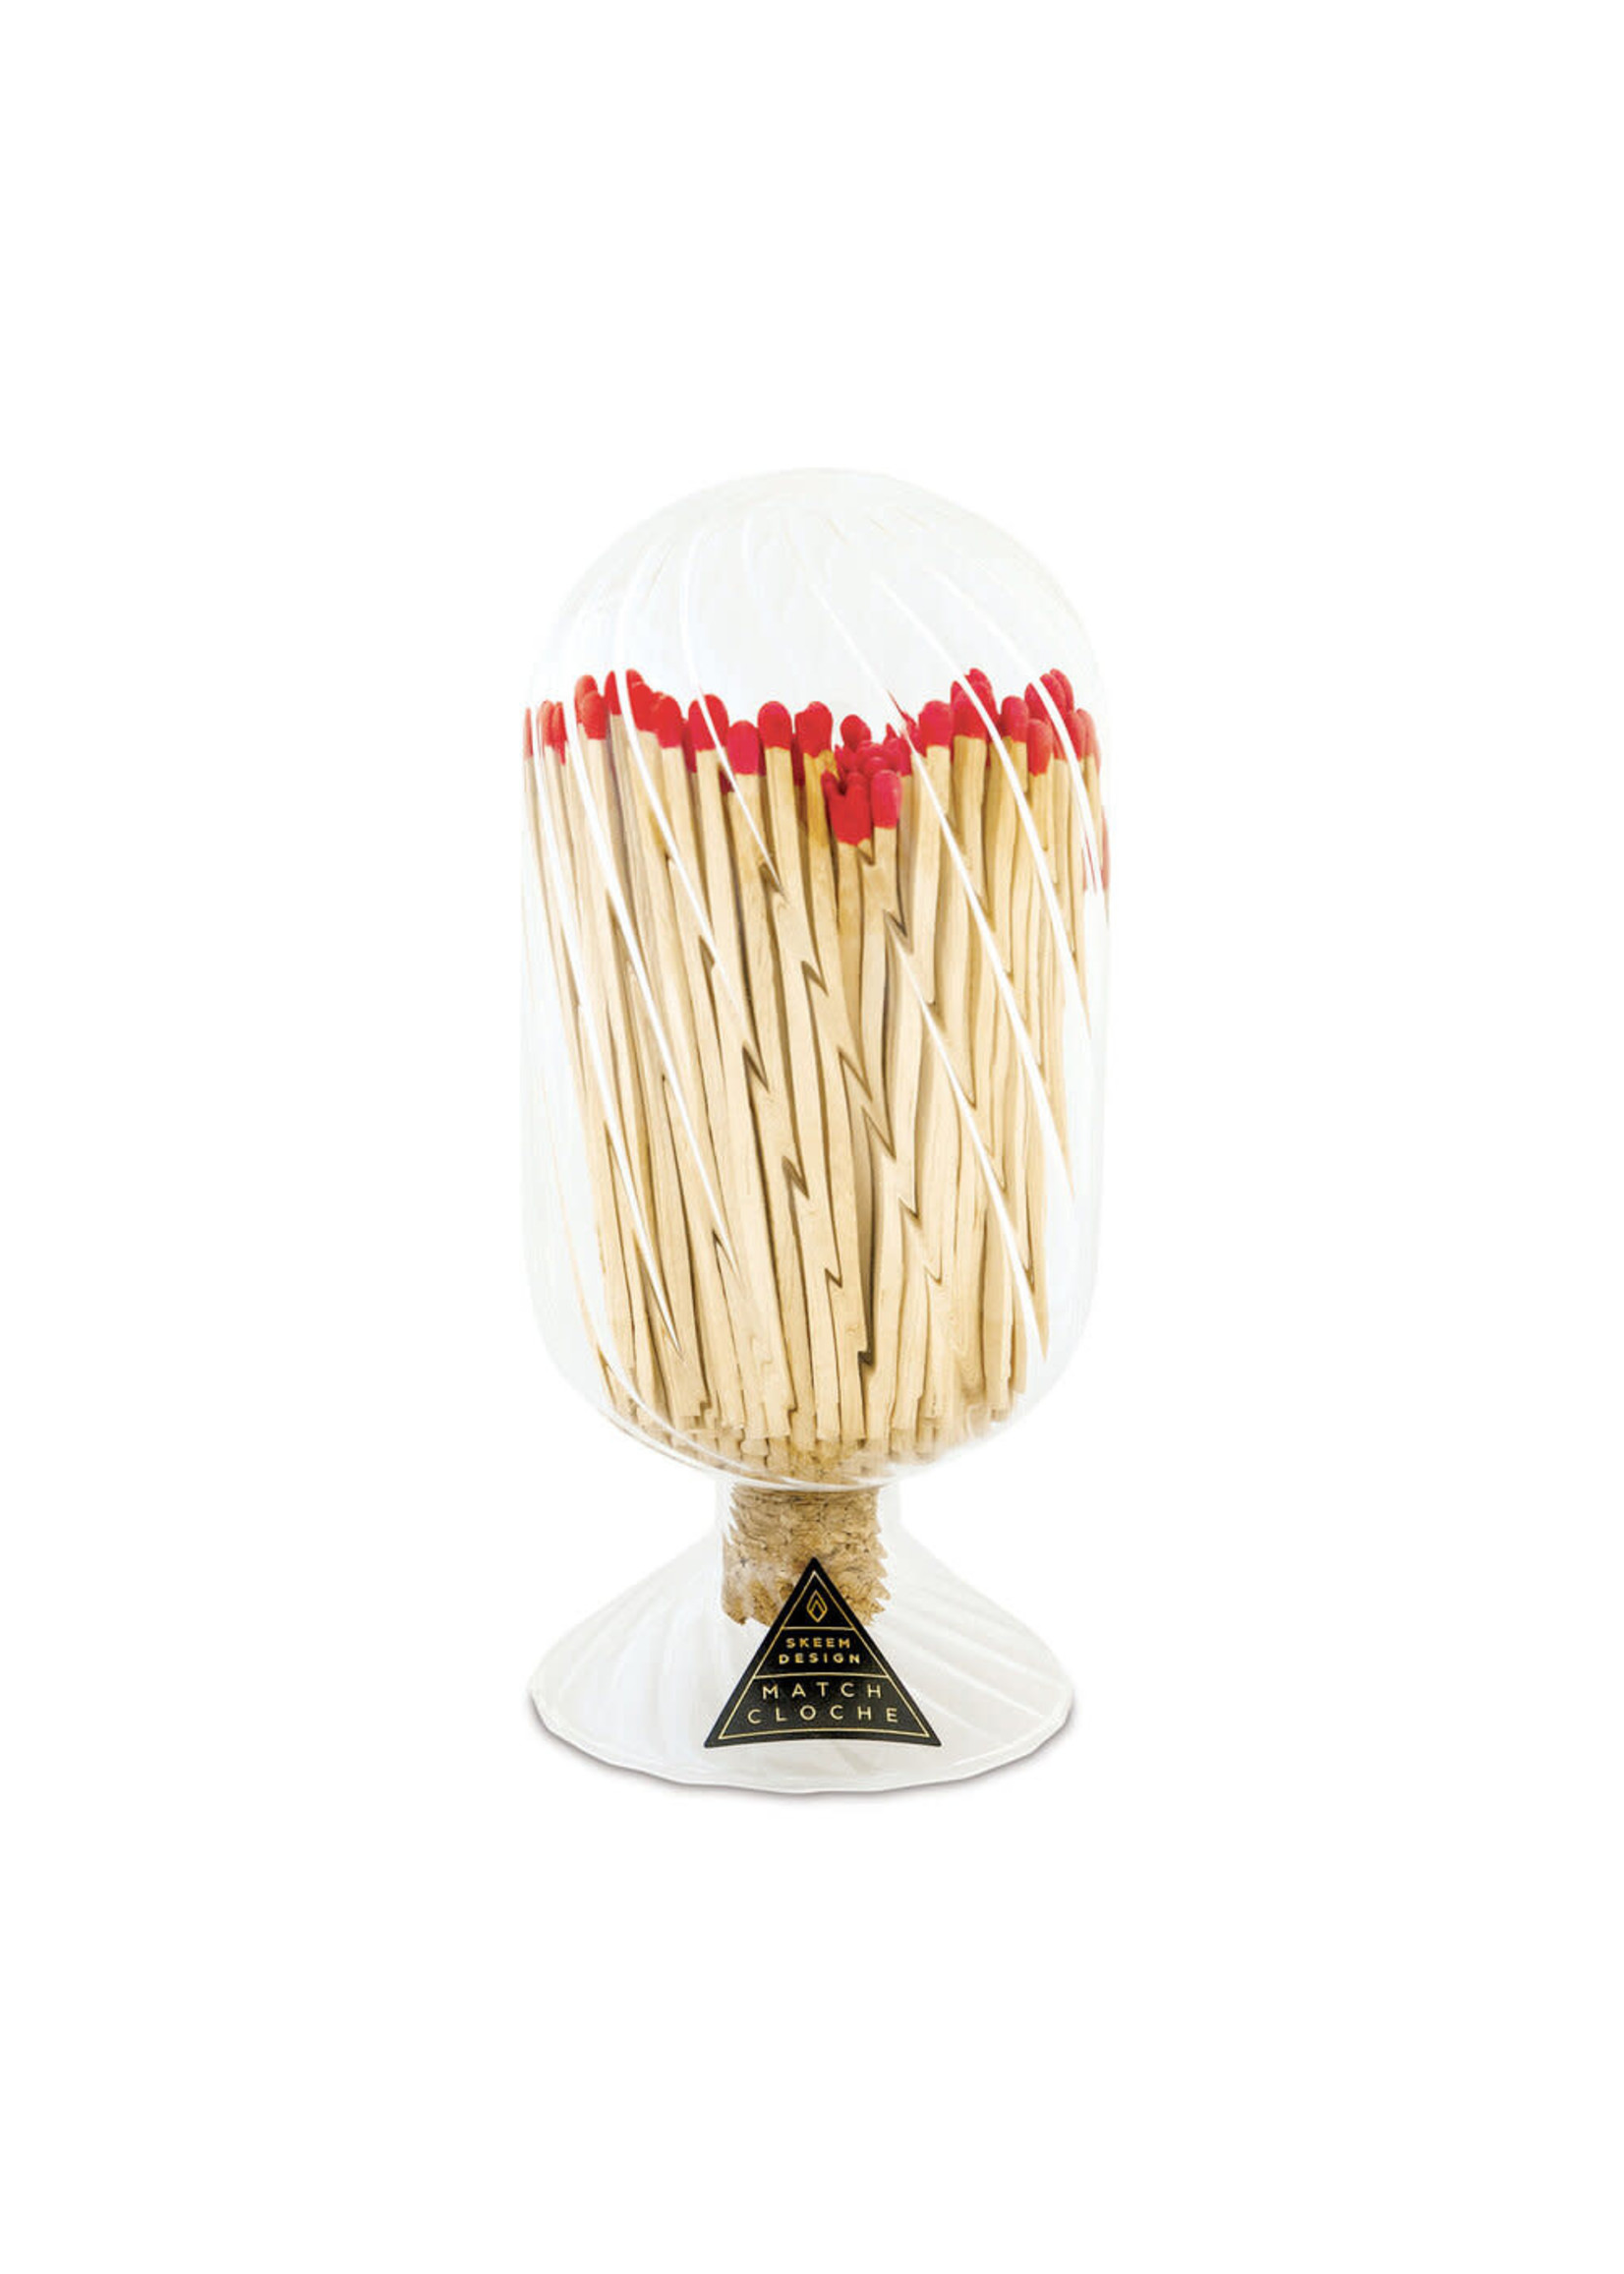 Ribbed Match Cloche - Red Tips